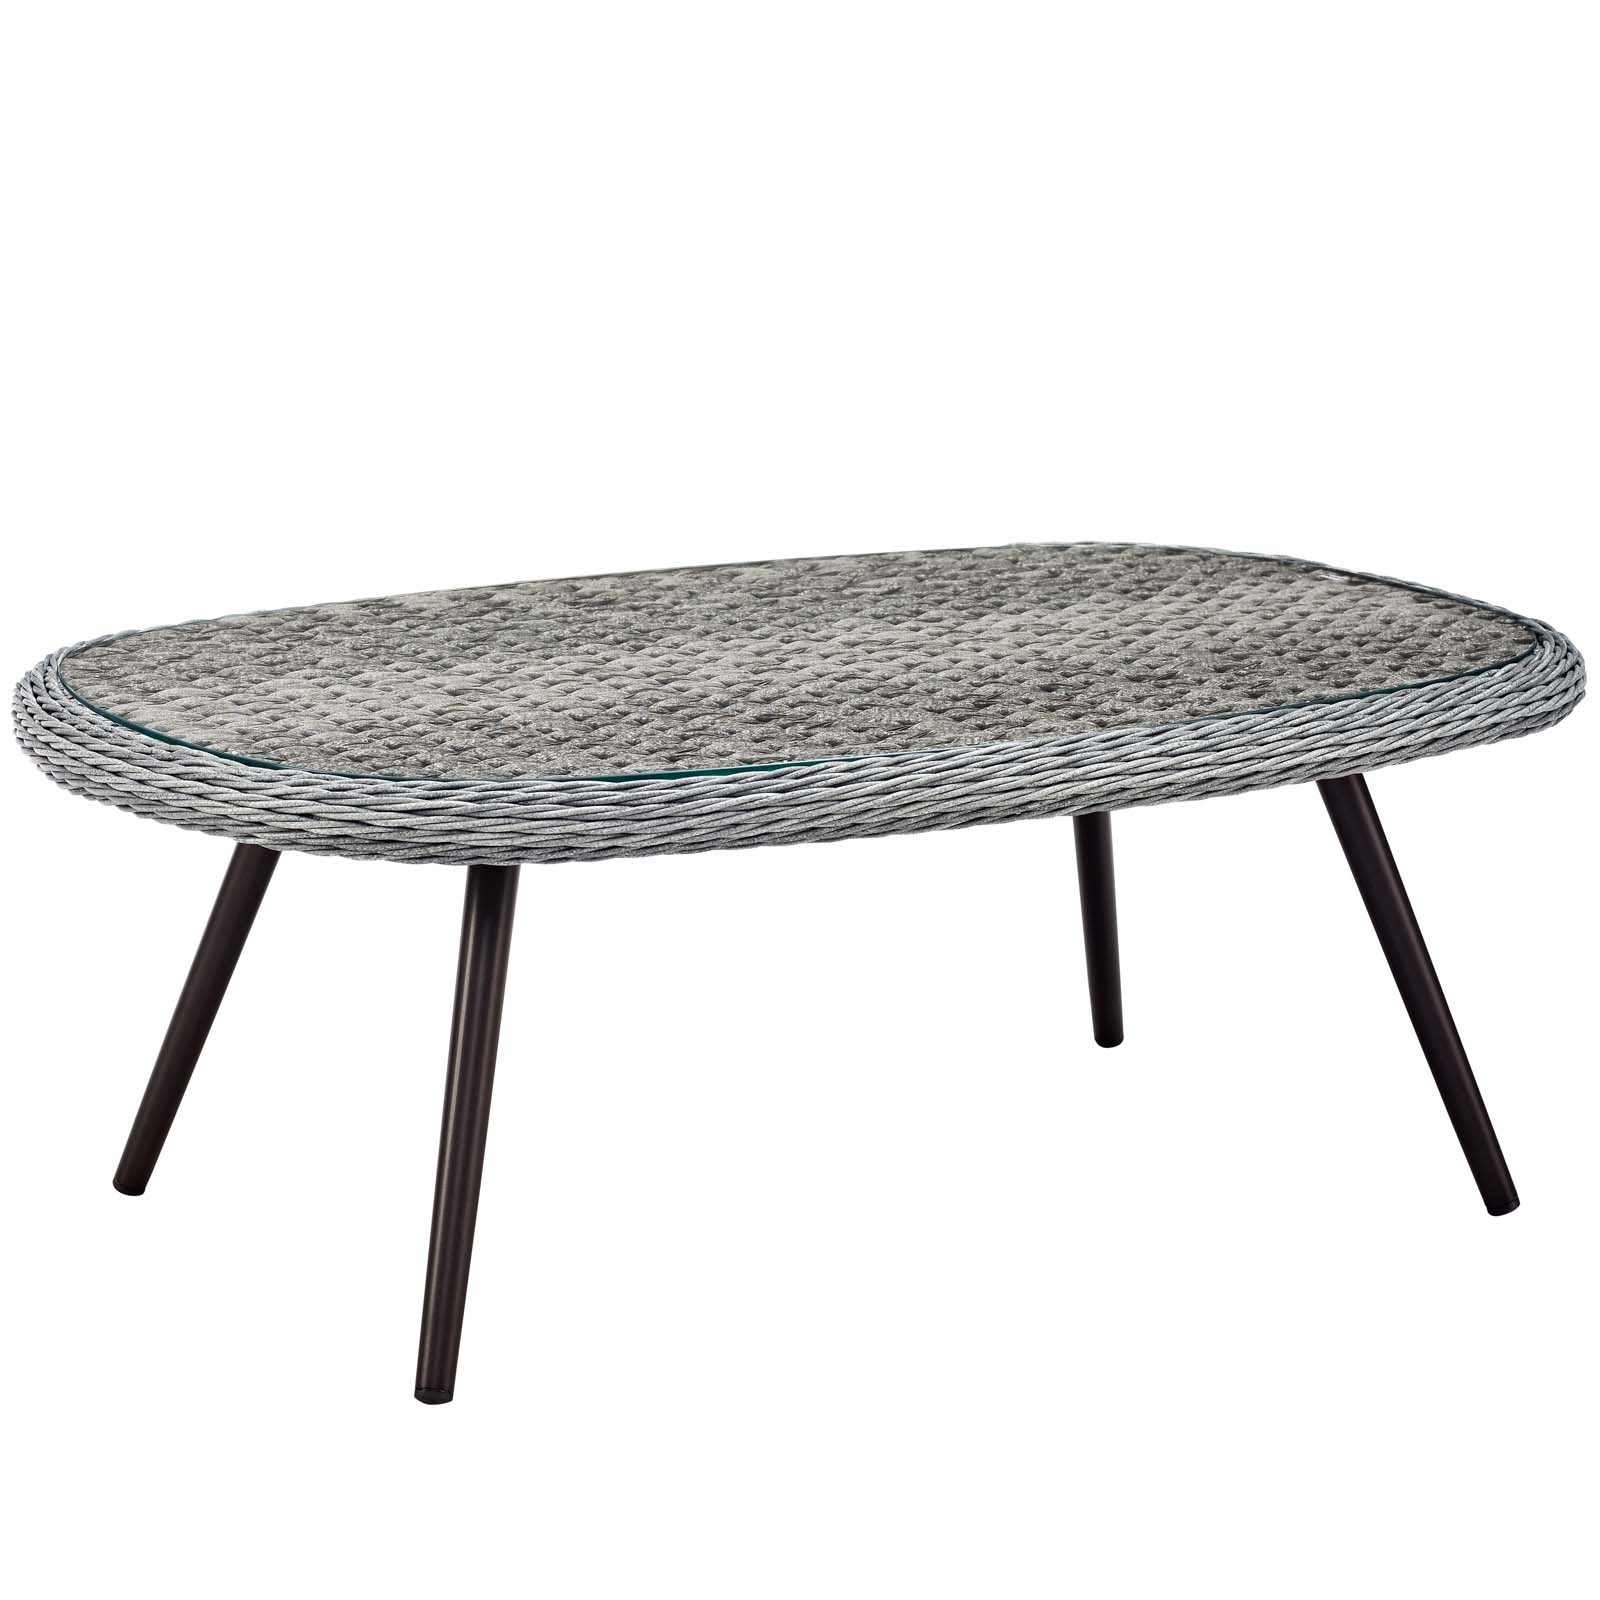 Endeavor Outdoor Patio Wicker Rattan Coffee Table in Gray